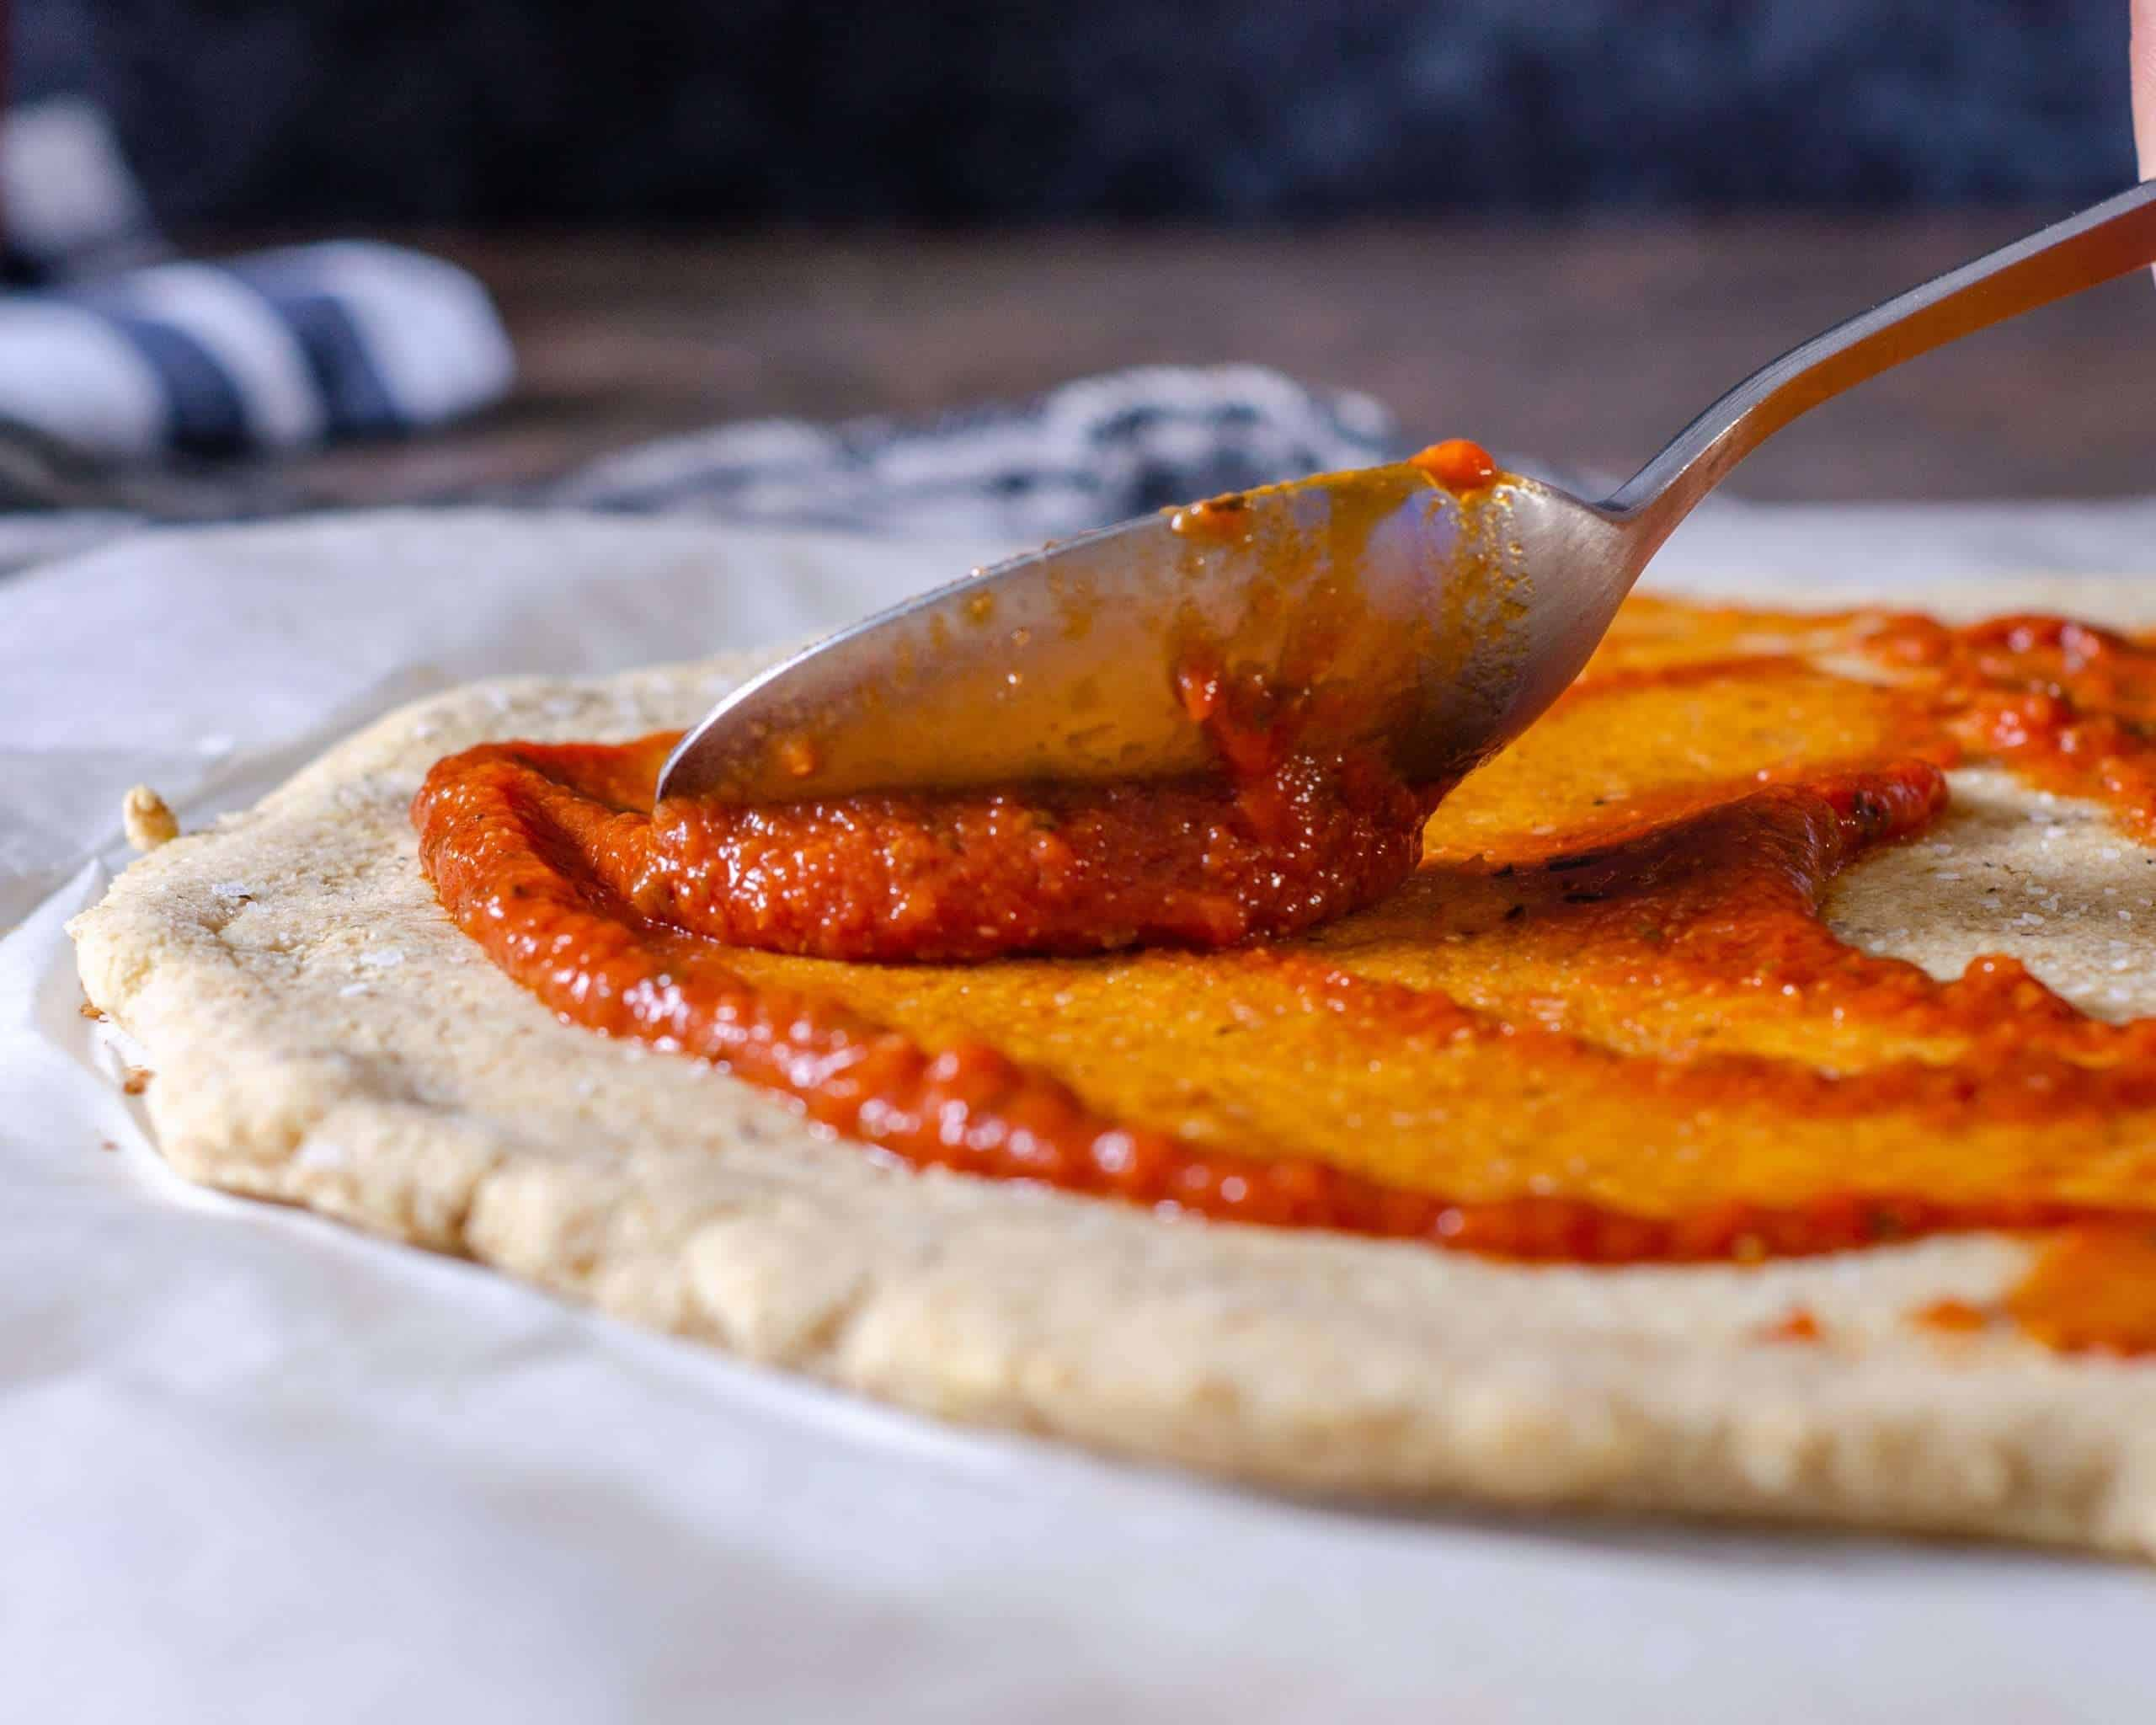 Keot pizza sauce spreading on low carb pizza dough